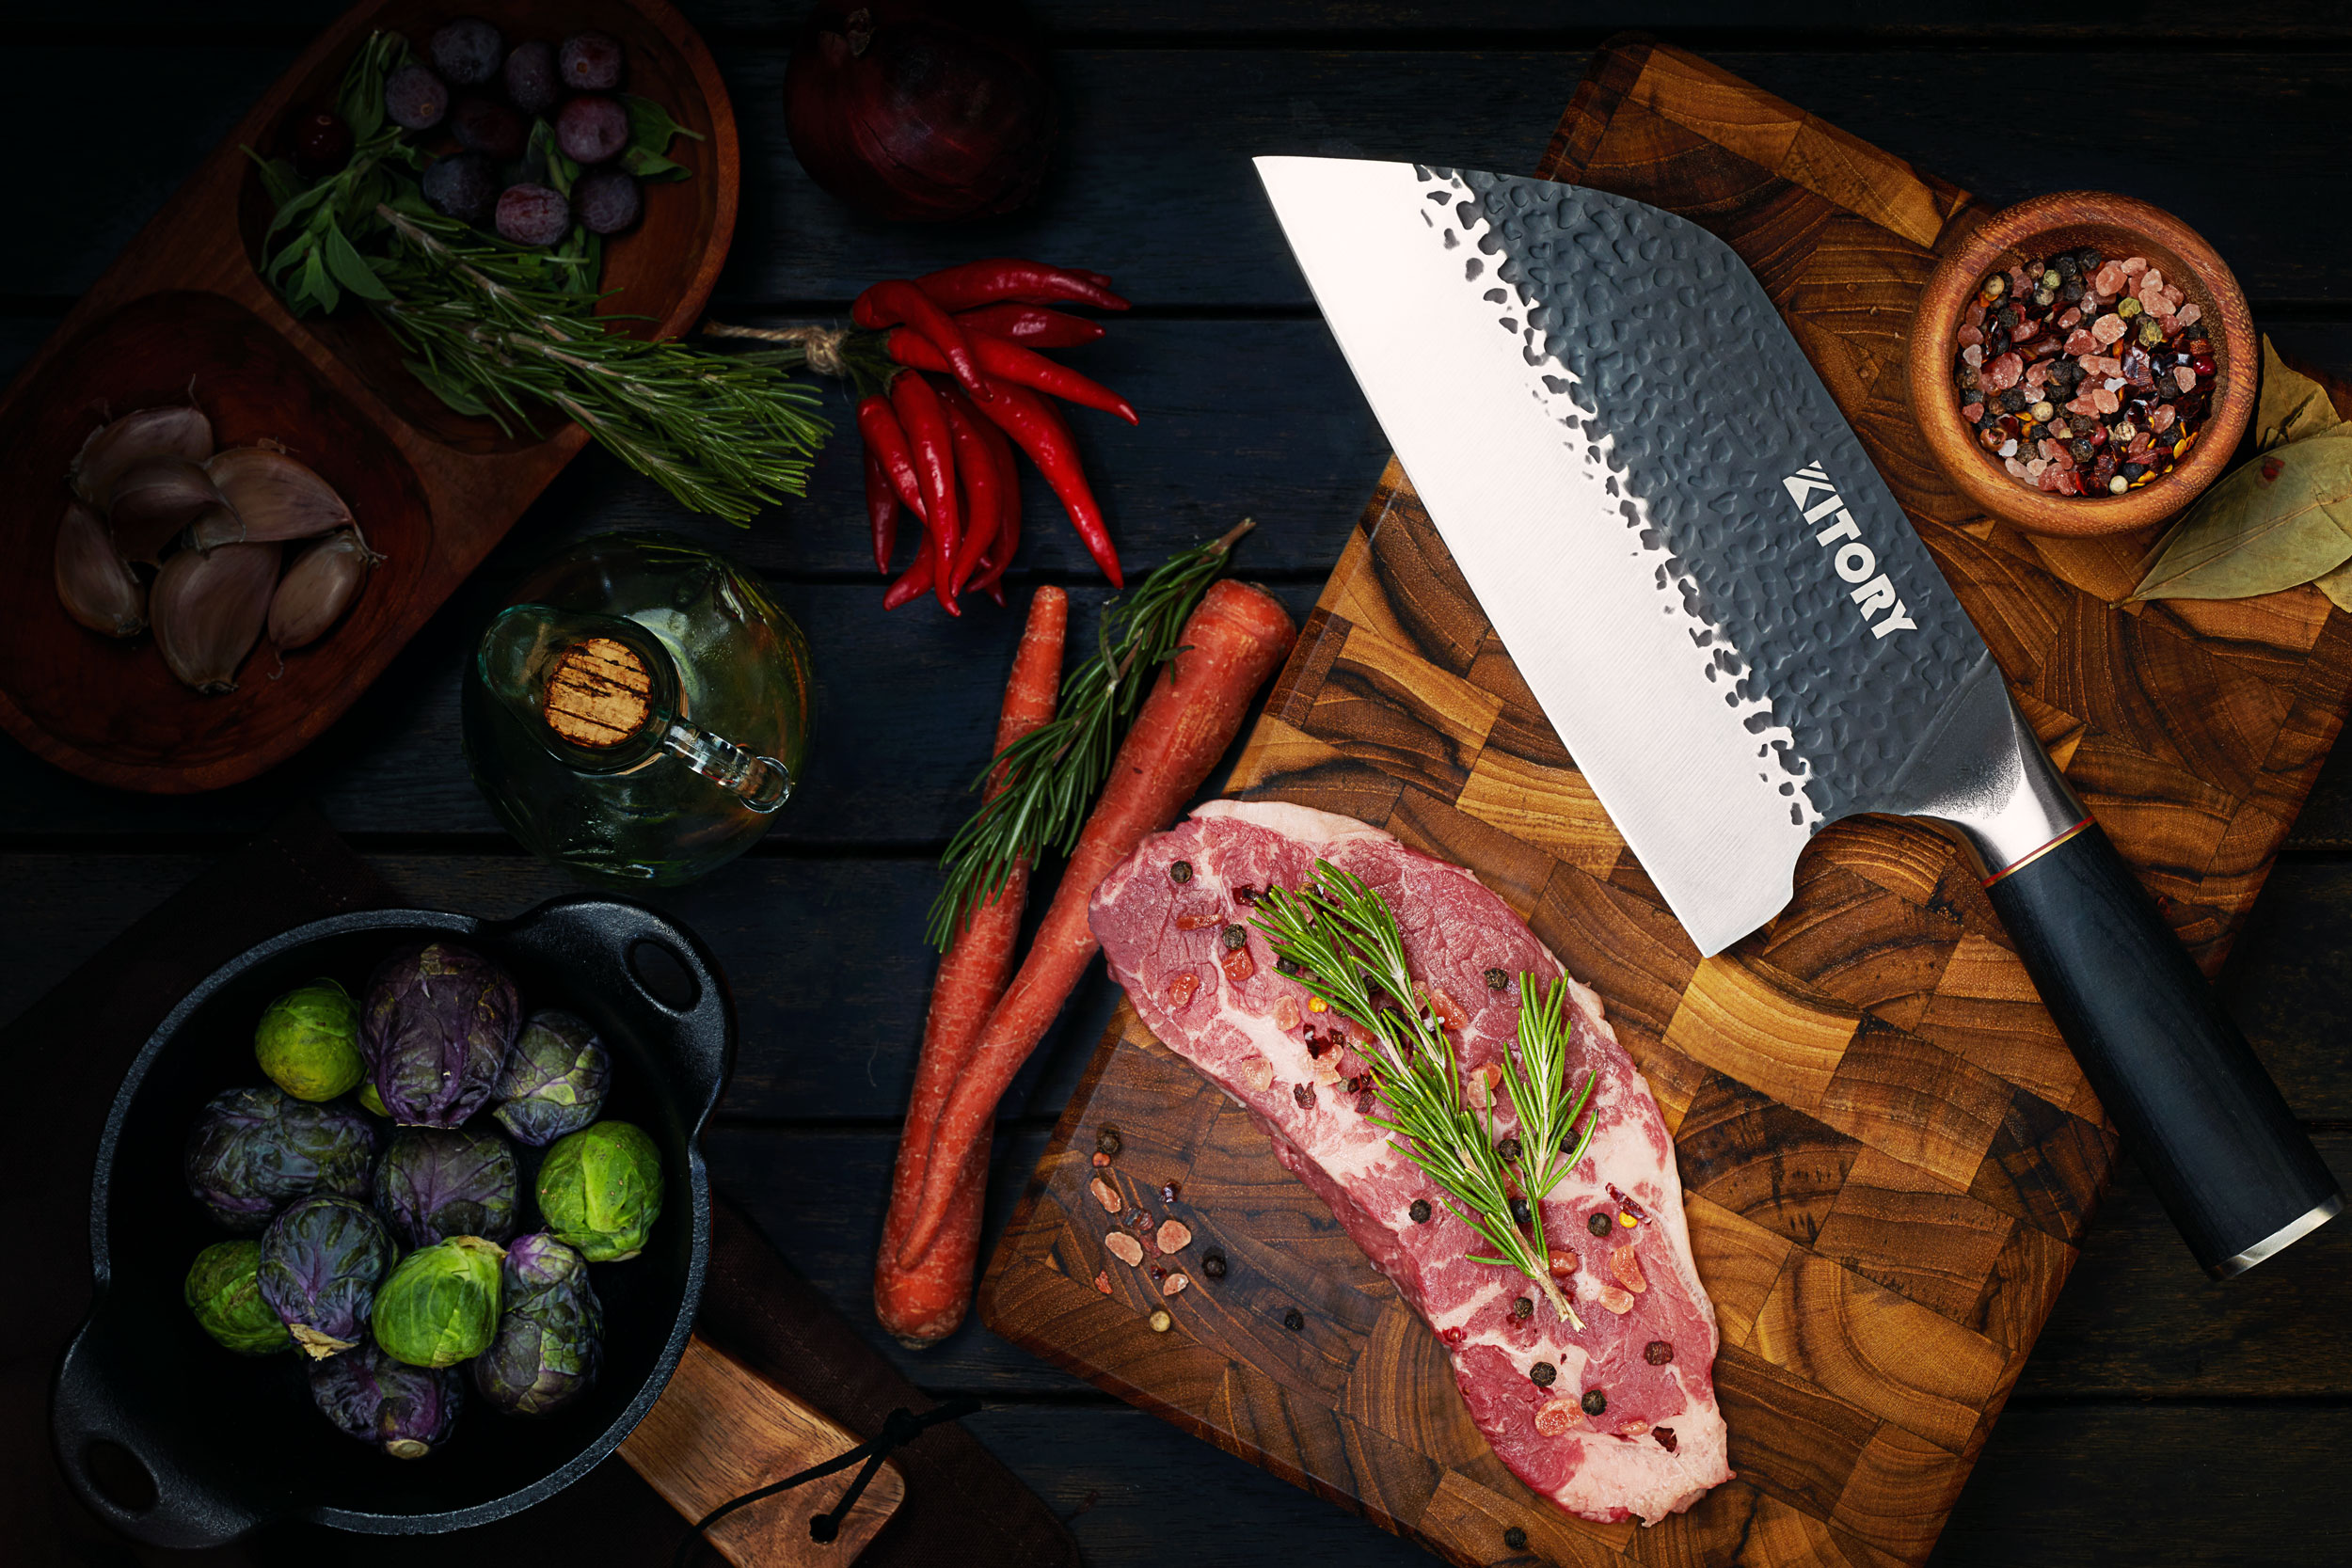 KITORY Forged Meat Cleaver